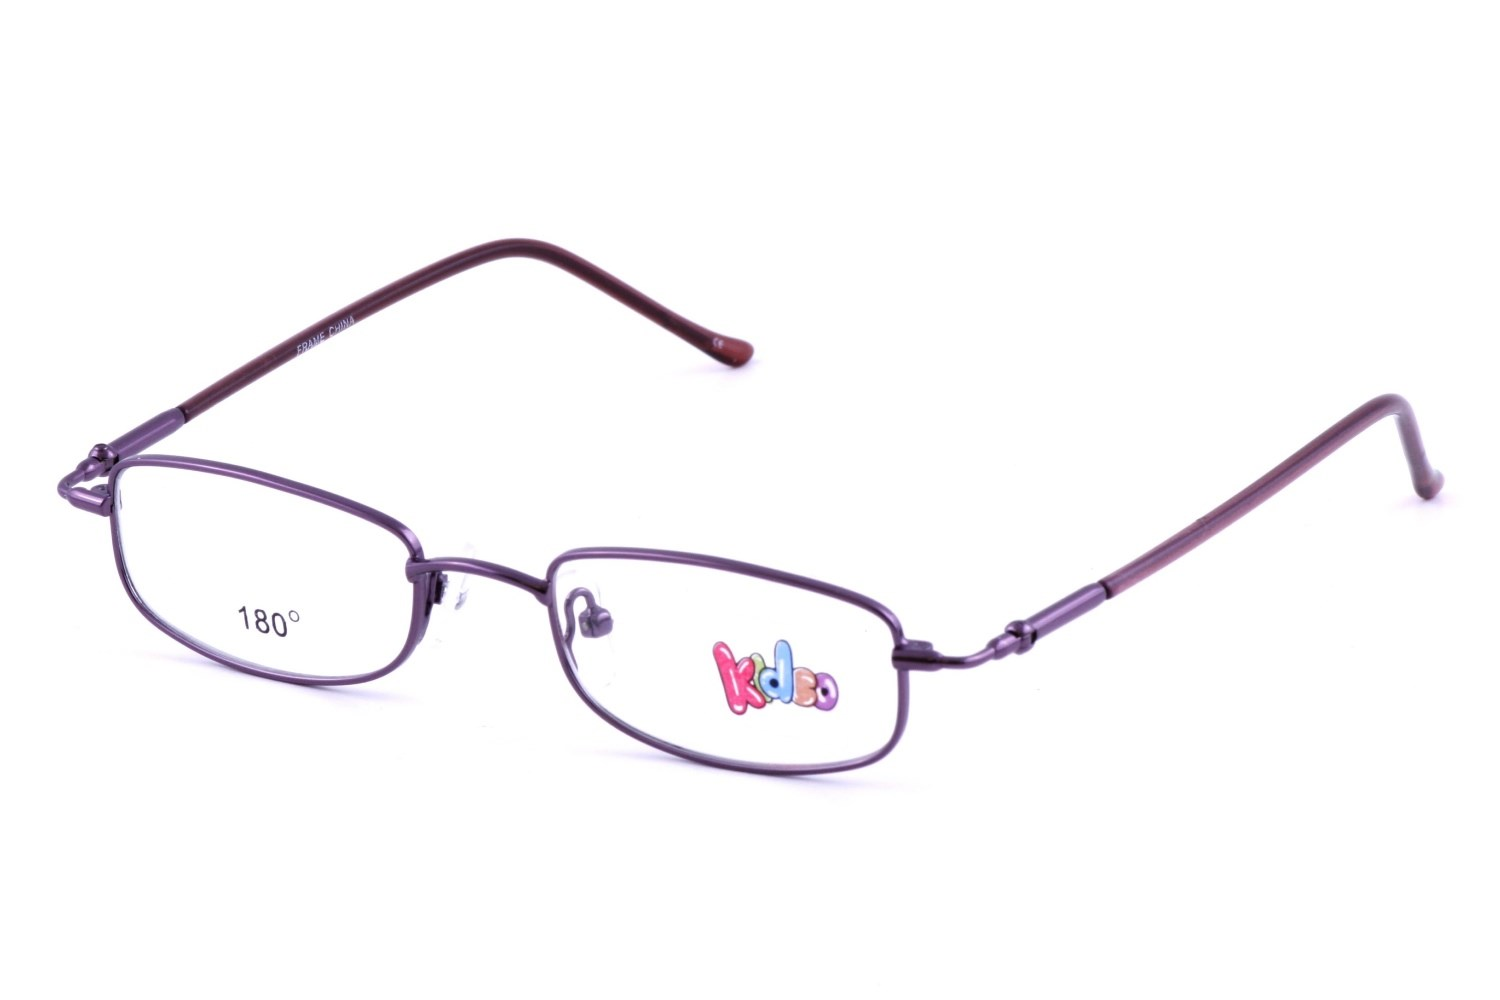 KIDCO 9 Prescription Eyeglasses Frames